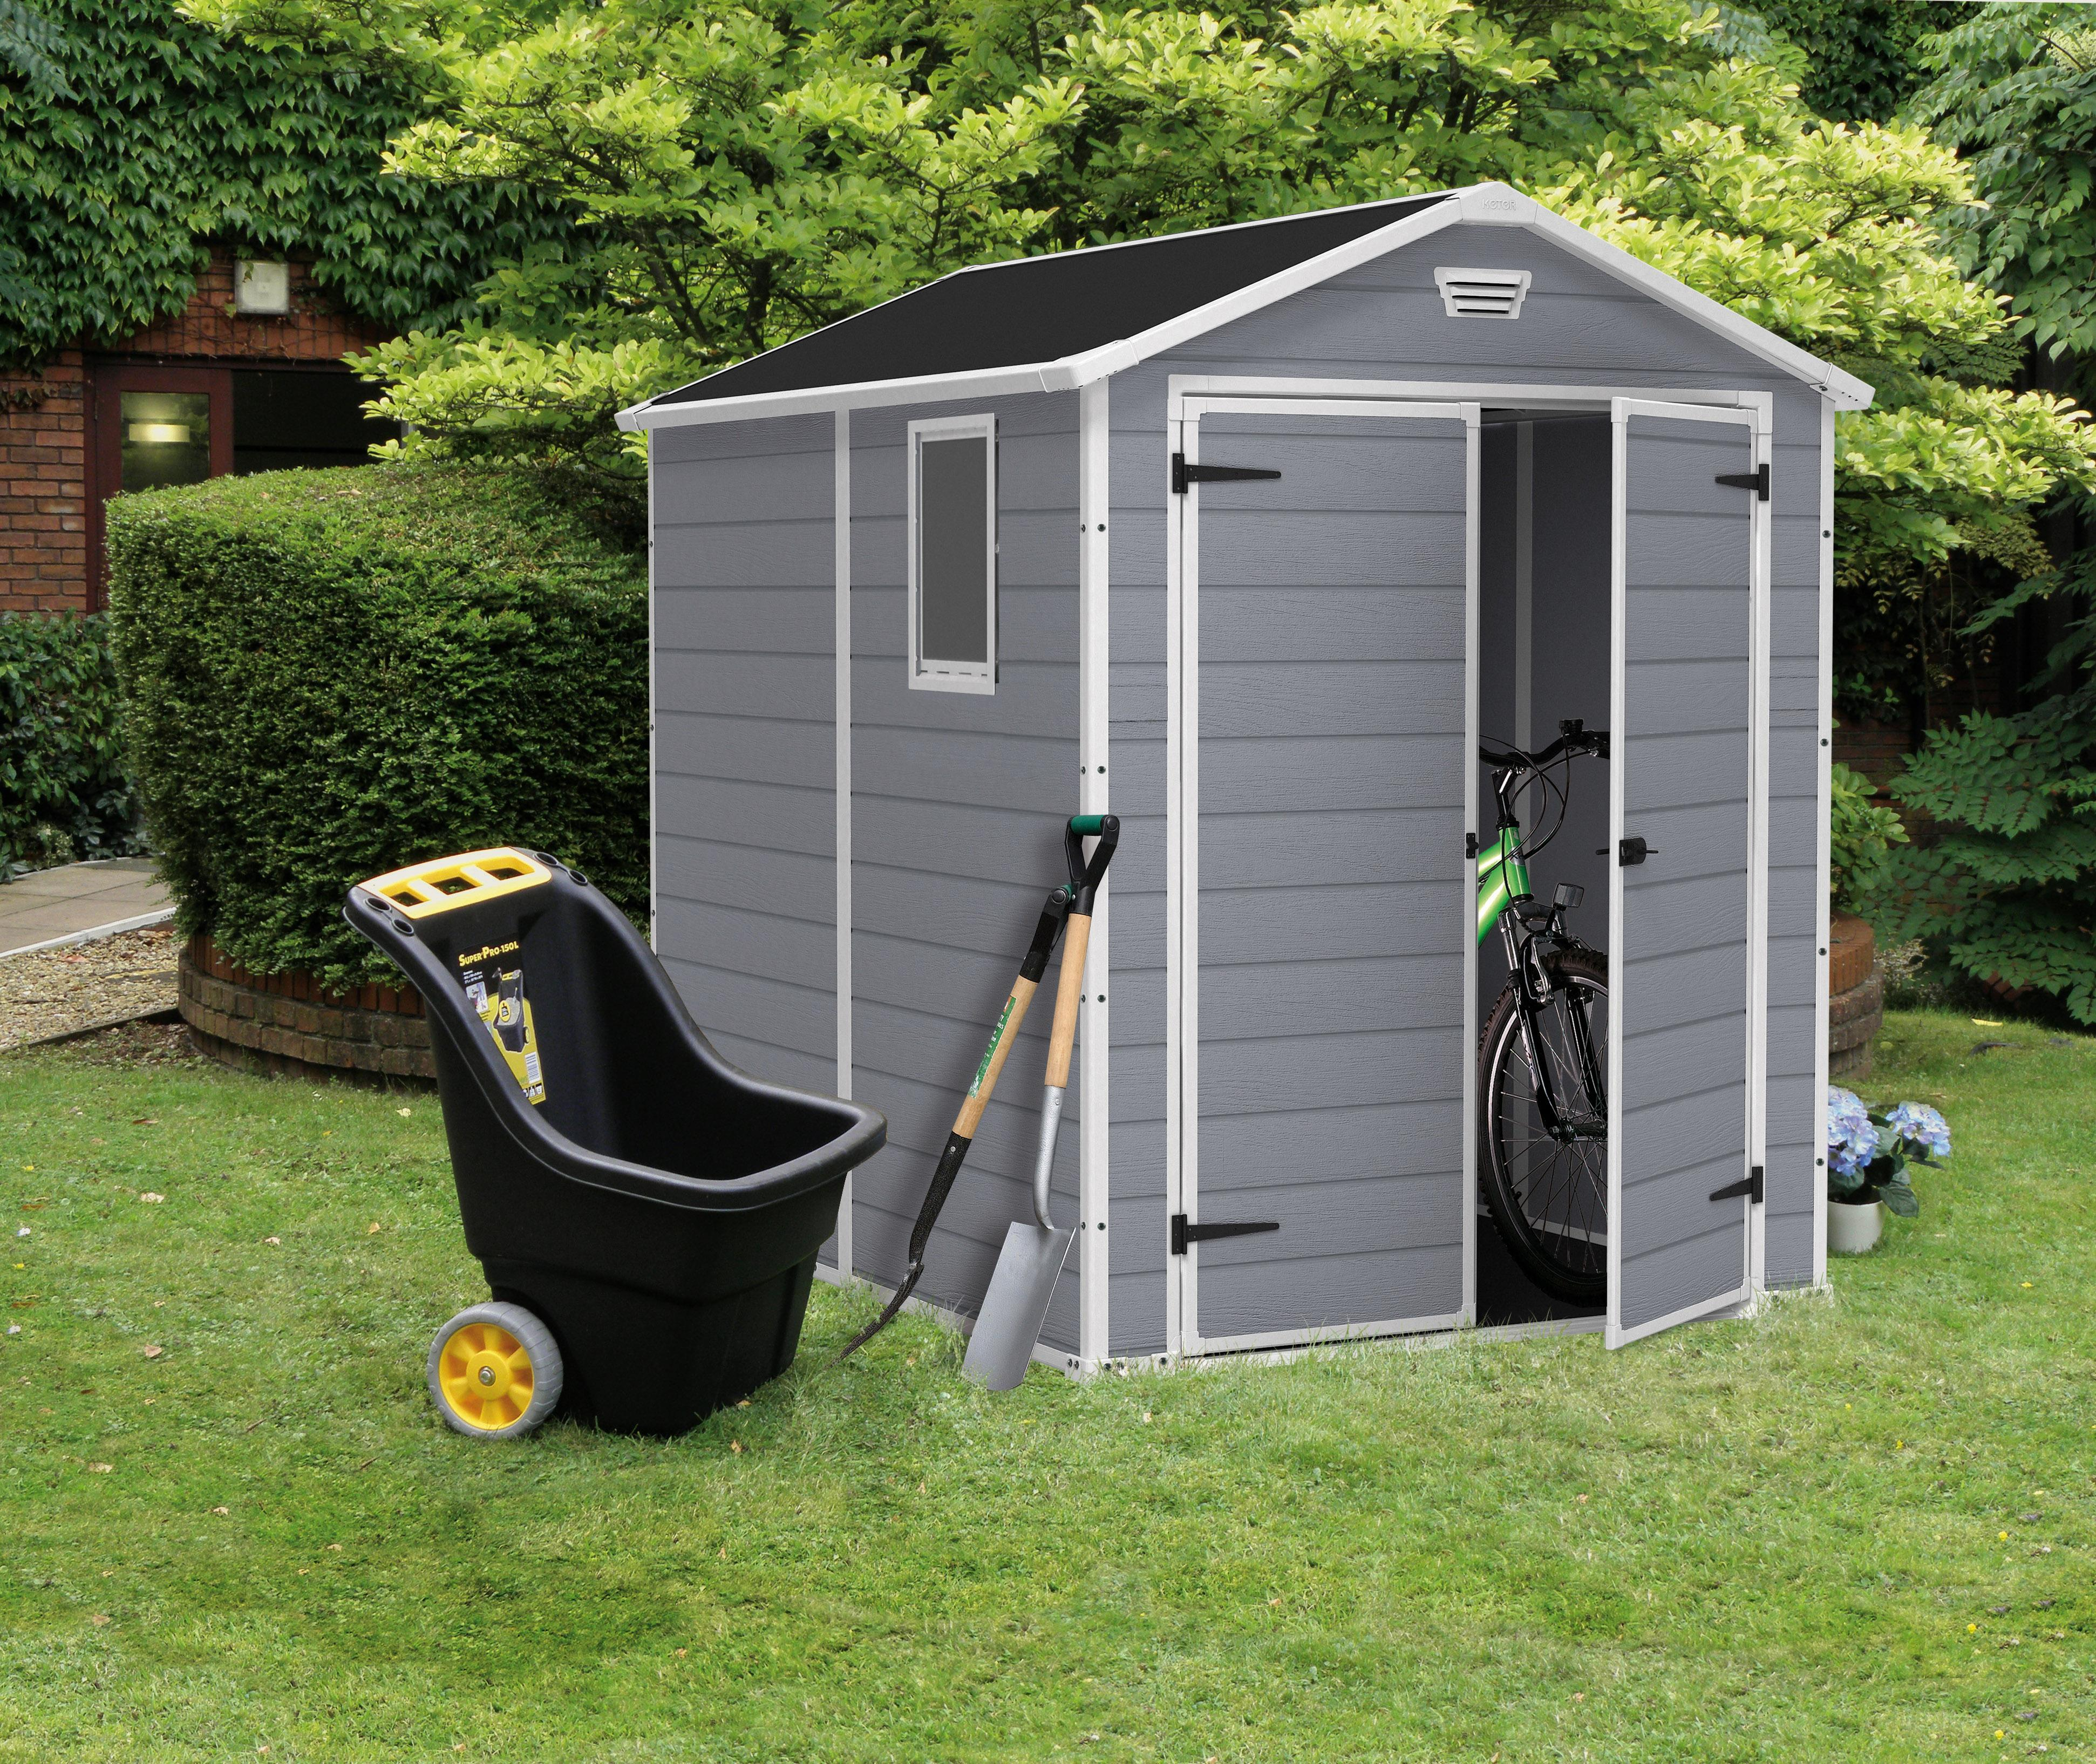 keter 6 x 6 shed instructions